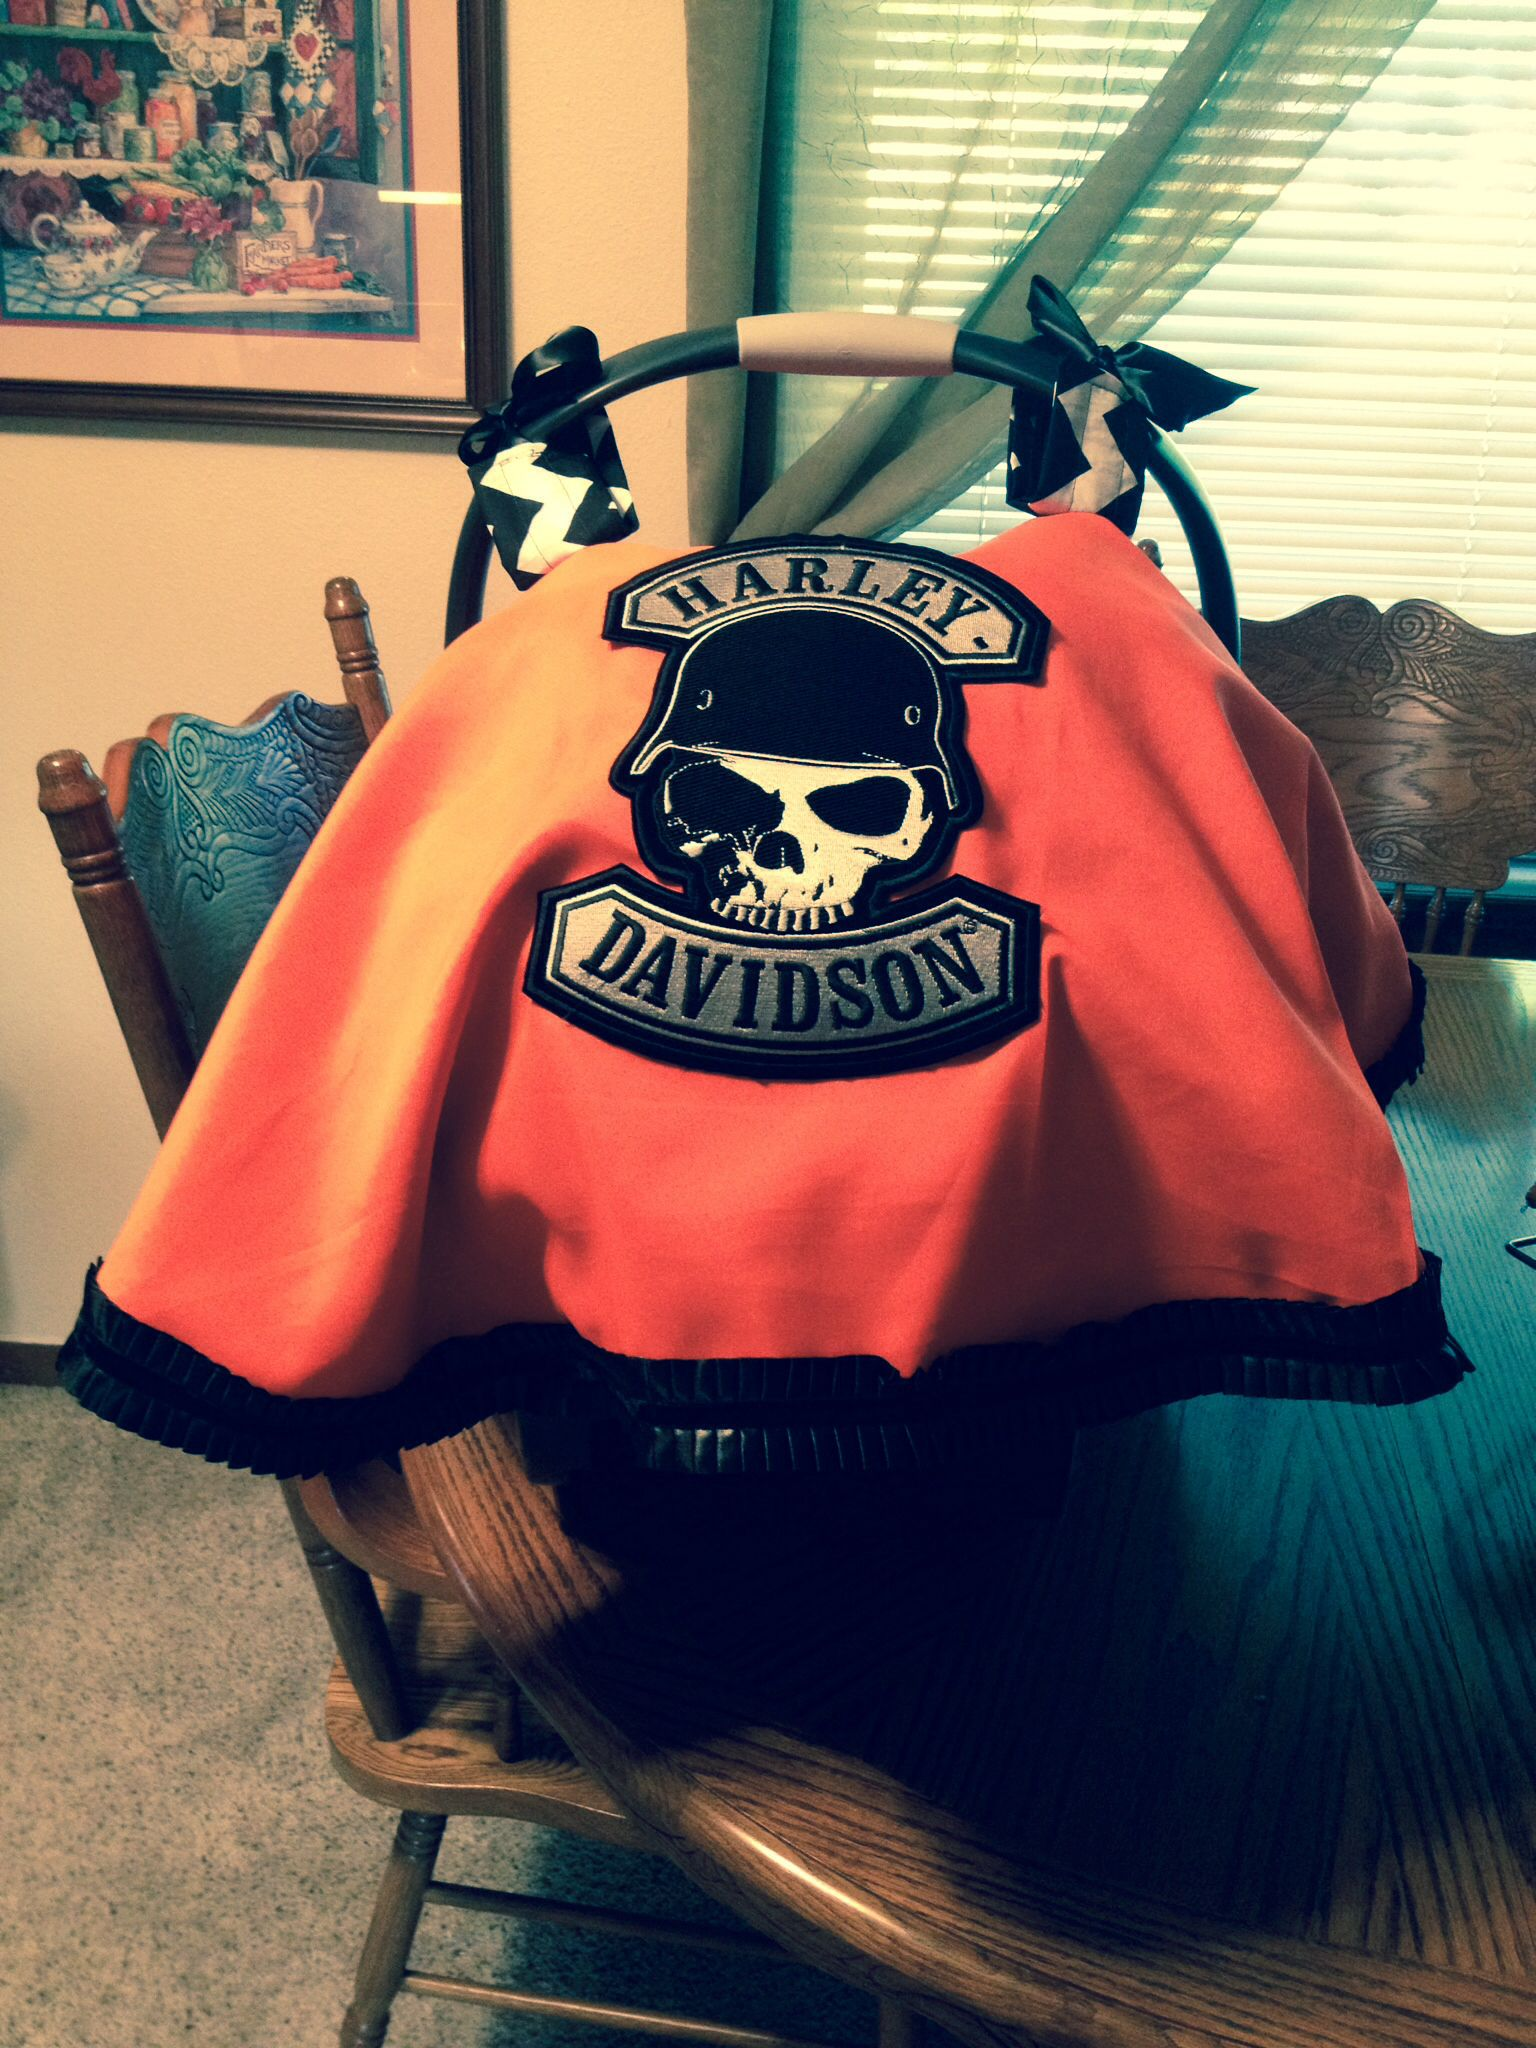 Harley Davidson Baby Car Seat Canopy Cover